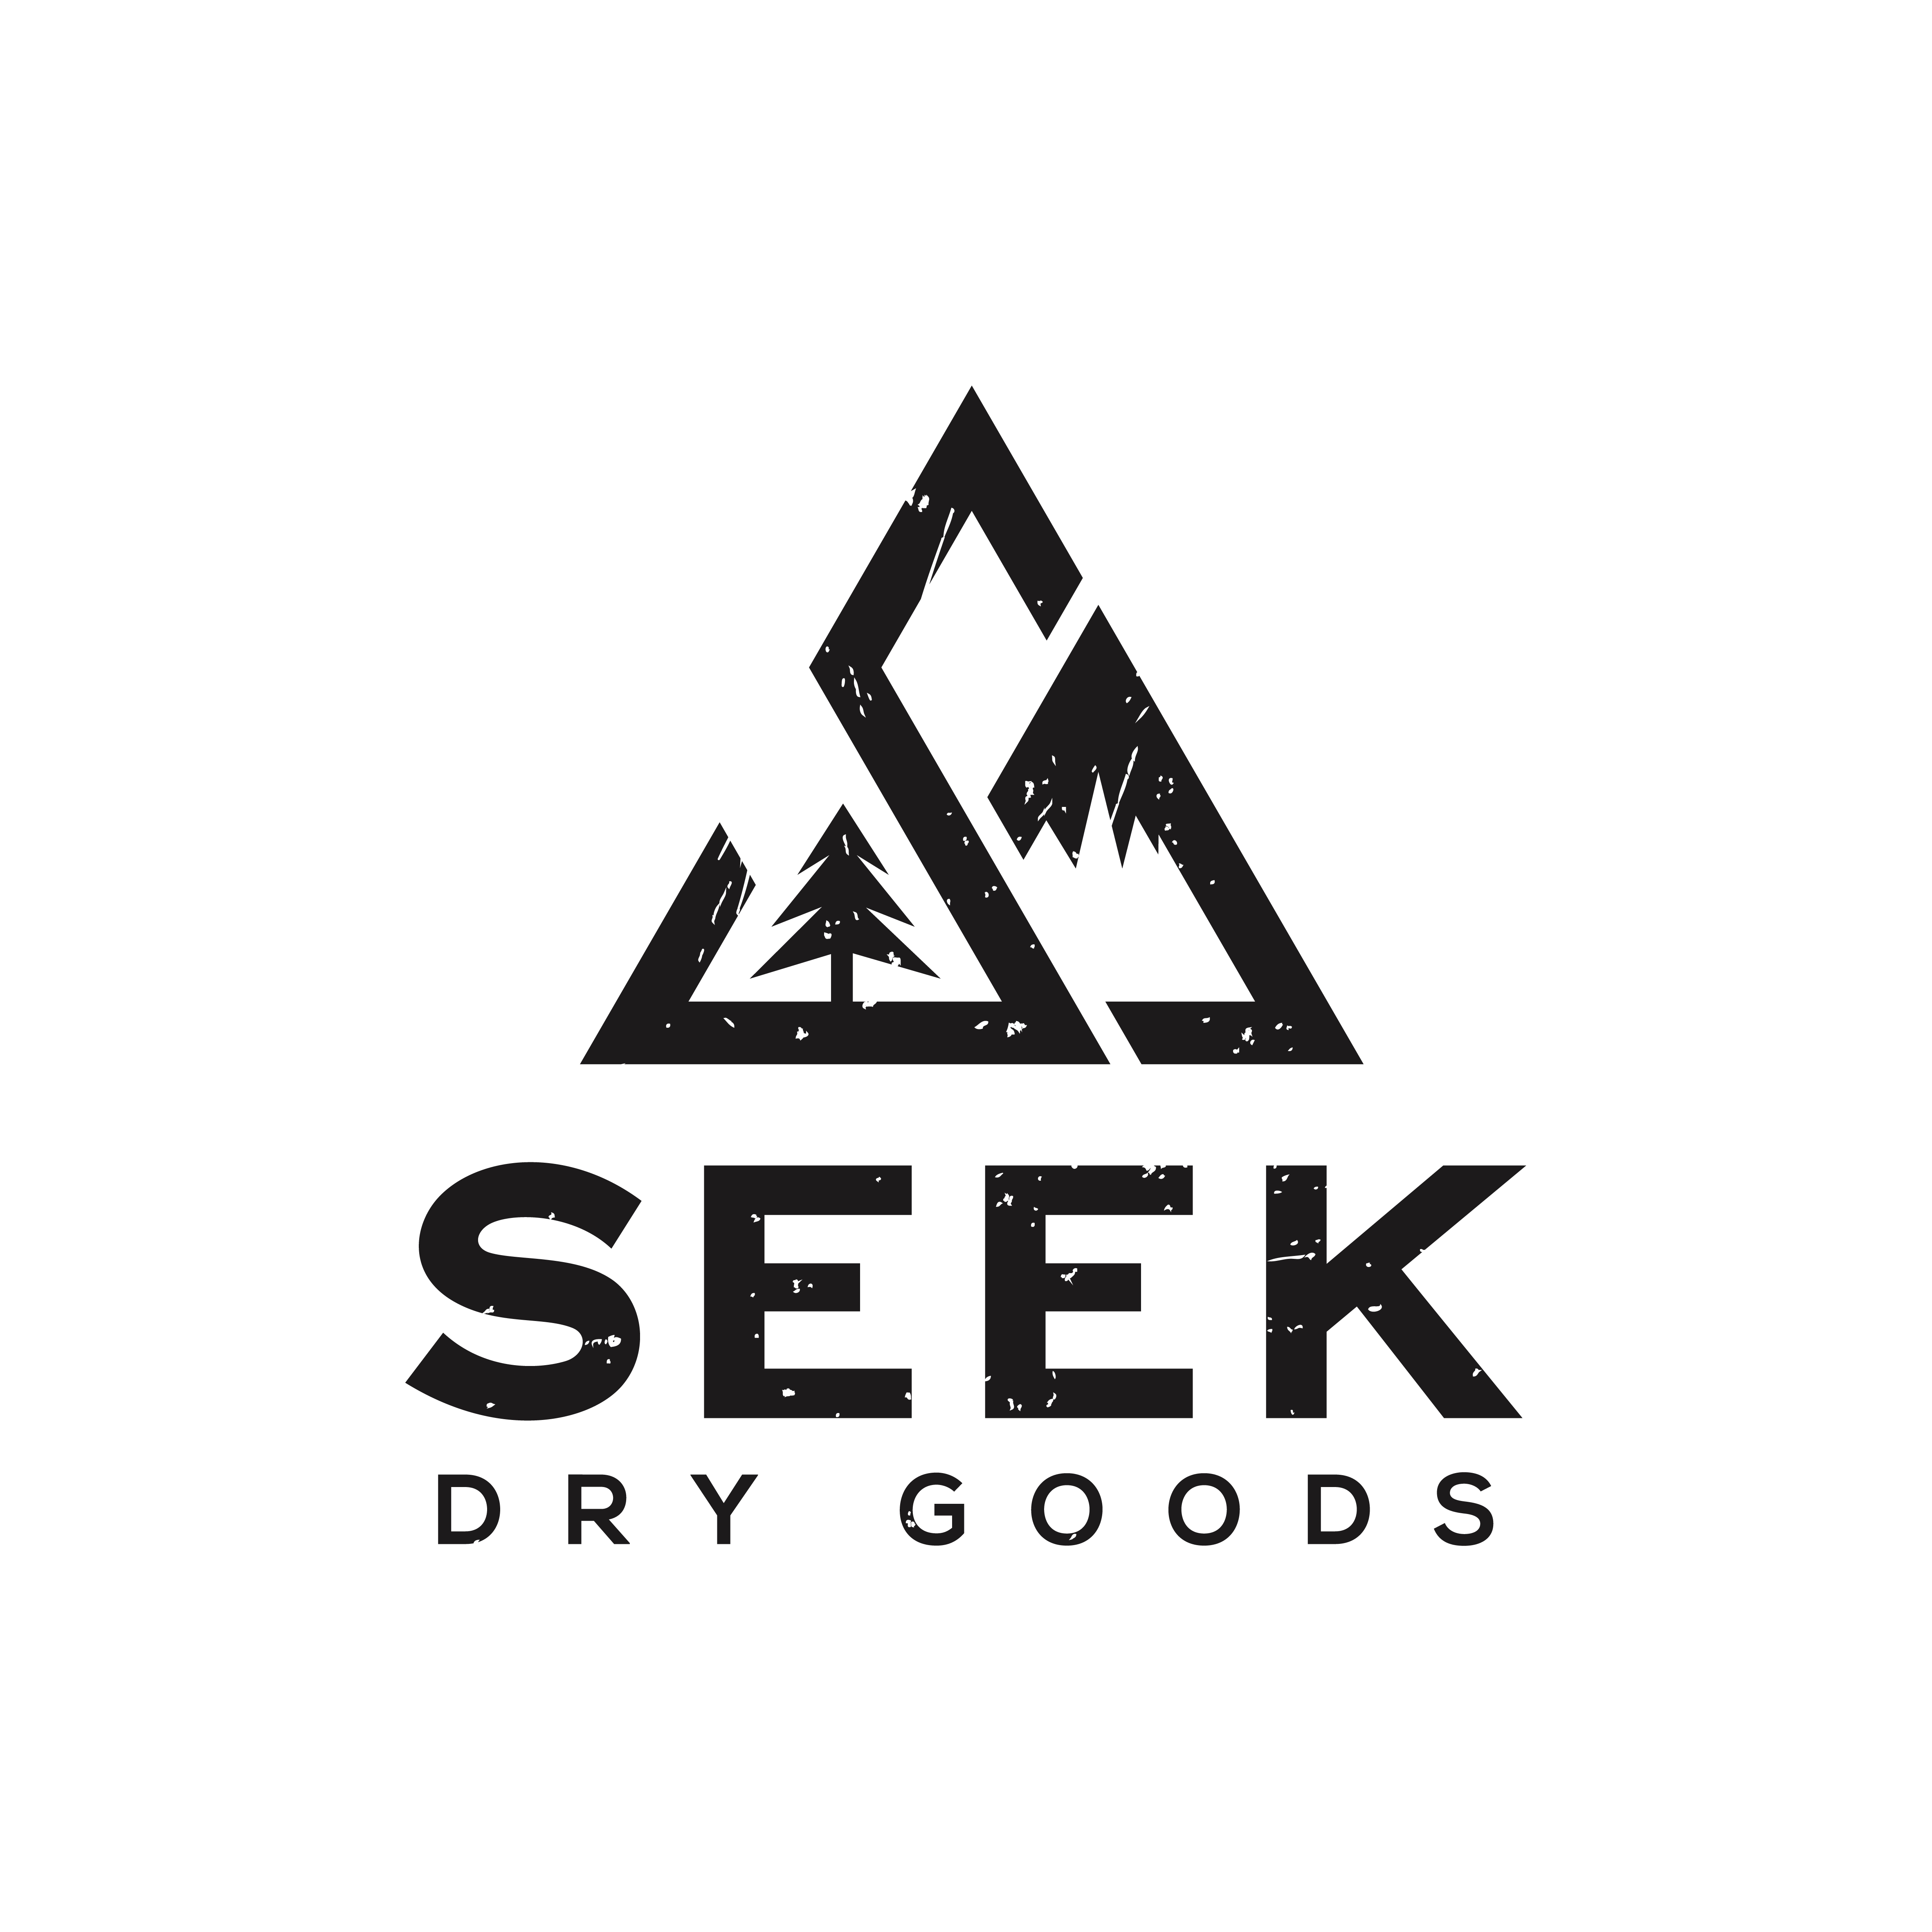 Design an iconic logo for outdoor lifestyle brand Seek Dry Goods